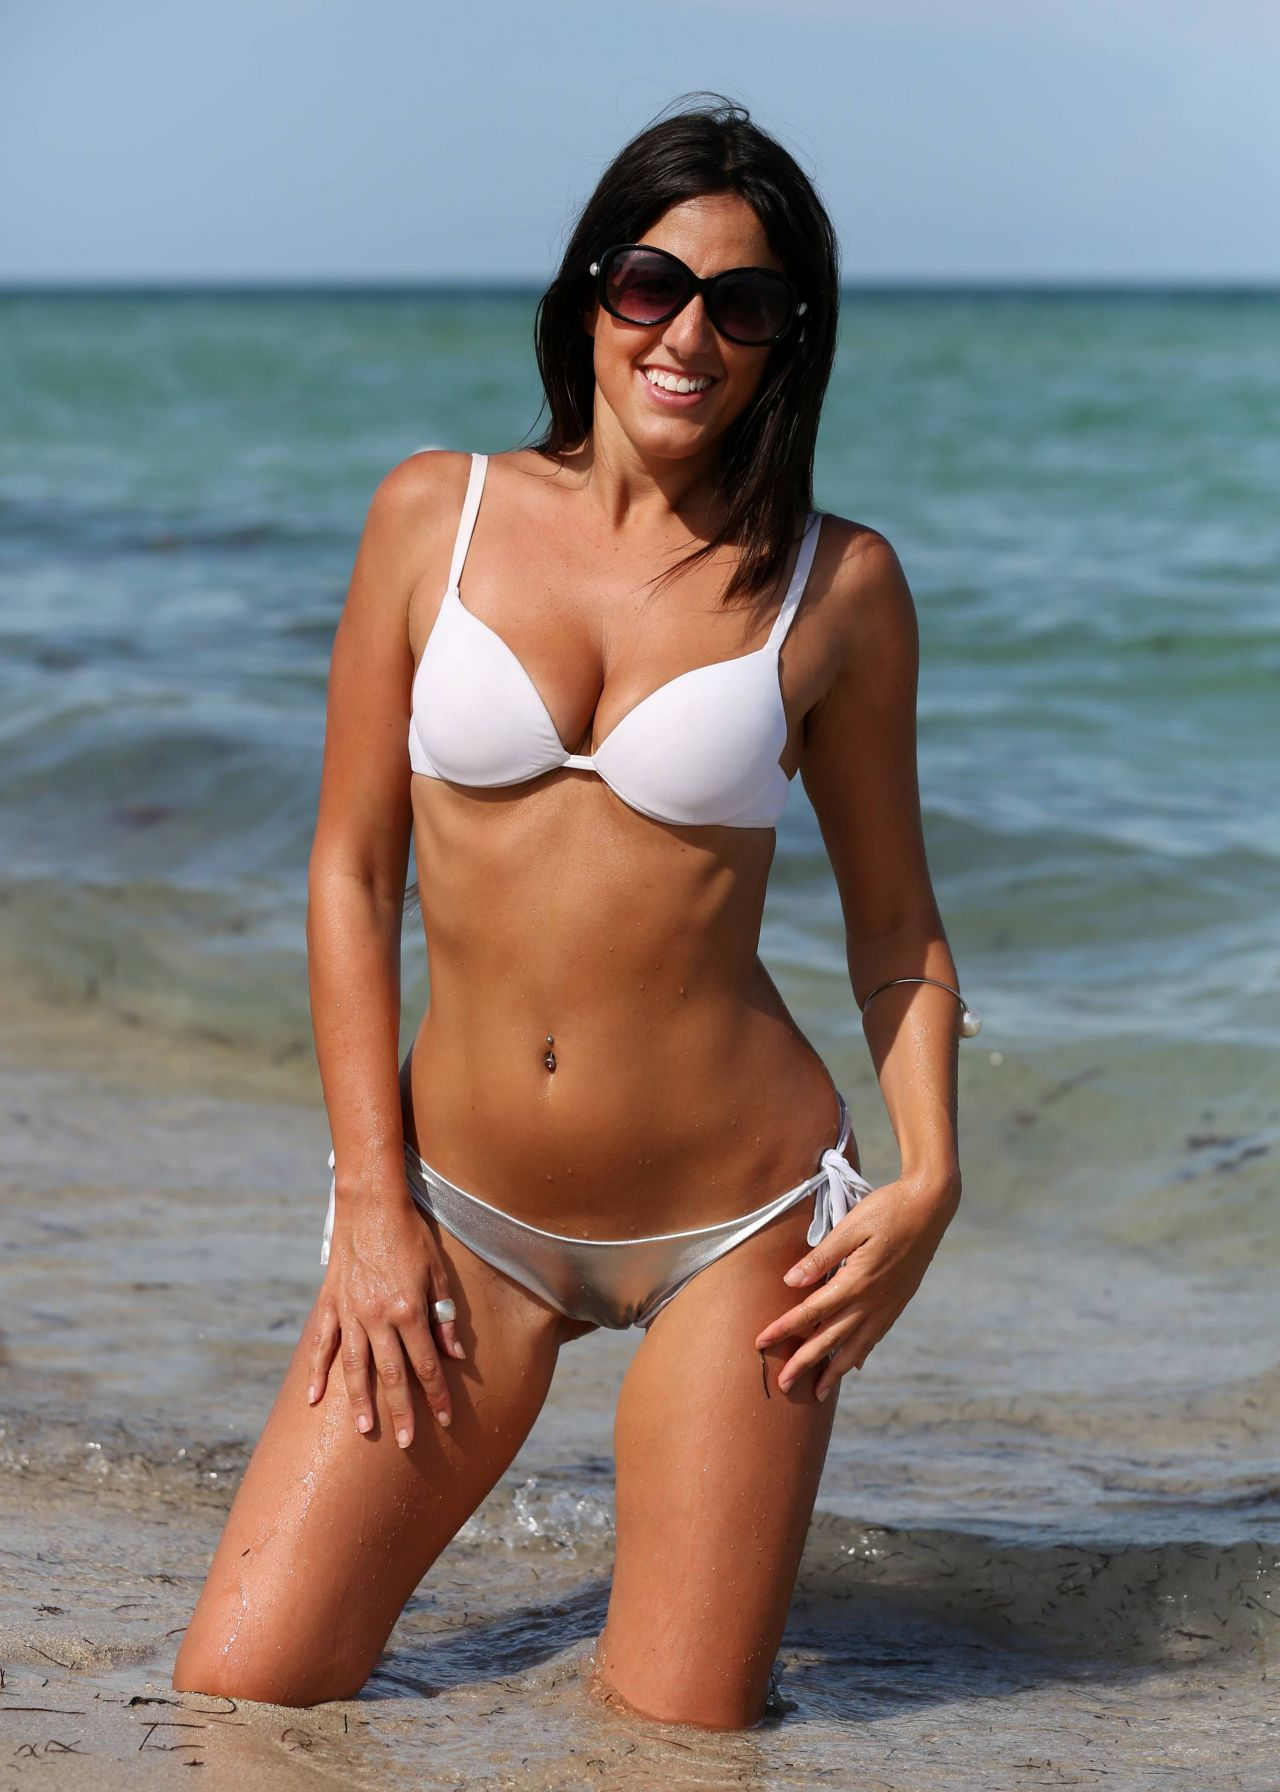 Claudia Romani Hot In Bikini - Miami Beach, August 2014-7998